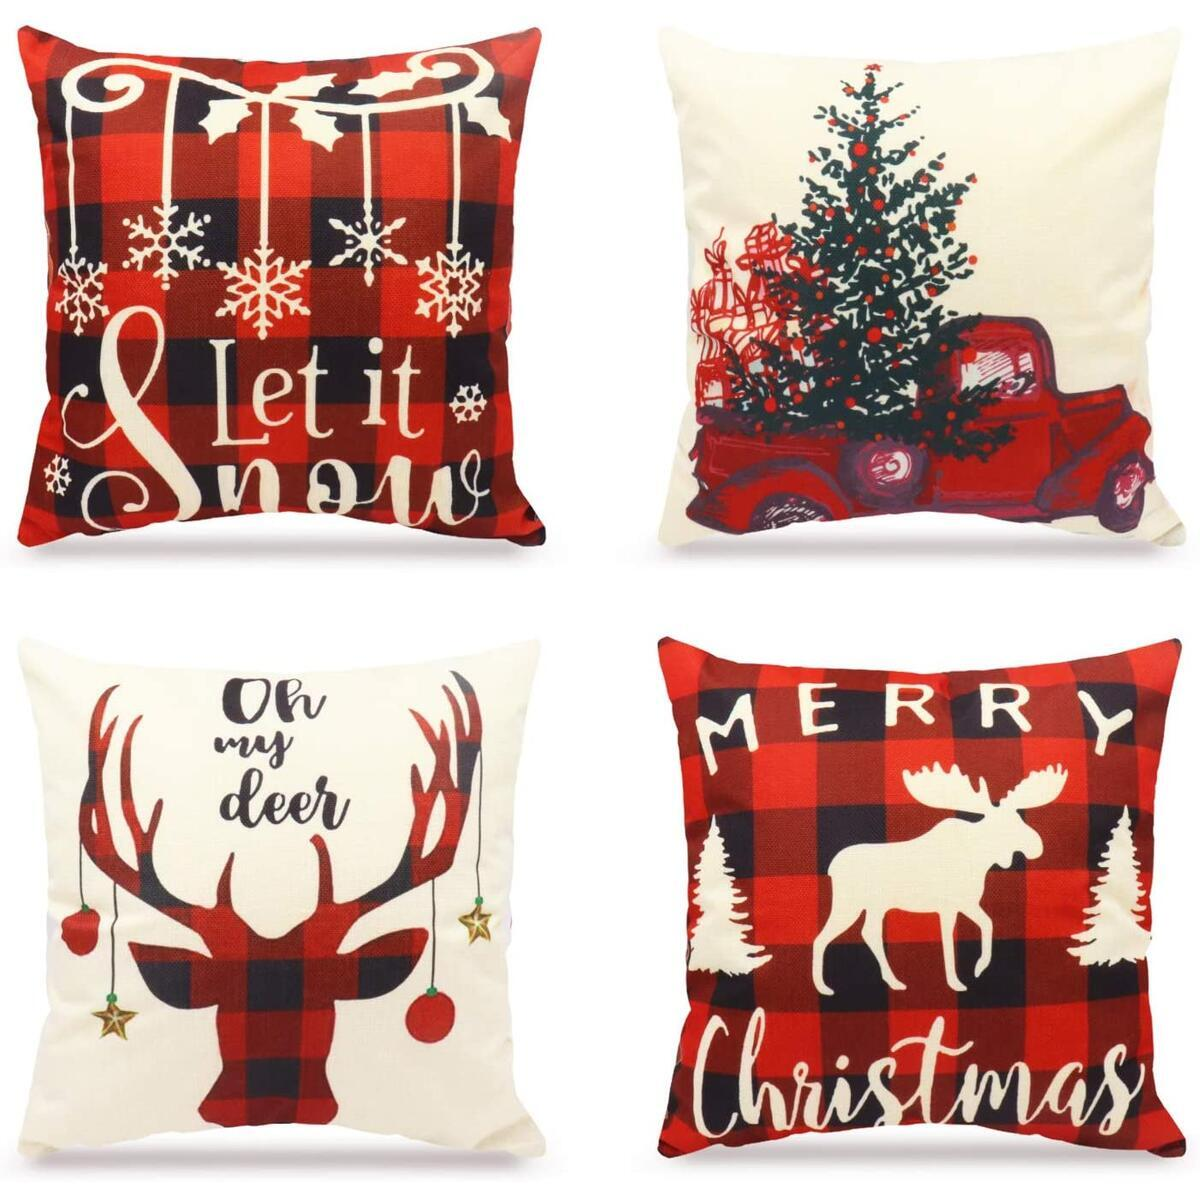 WEYON Christmas Throw Pillow Covers 4 Pack Buffalo Plaid Farmhose Deer Truck Merry Xmas Sofa Outdoor Decorative Cushion Cases 18 × 18 Inch, Sold by CHUDAO